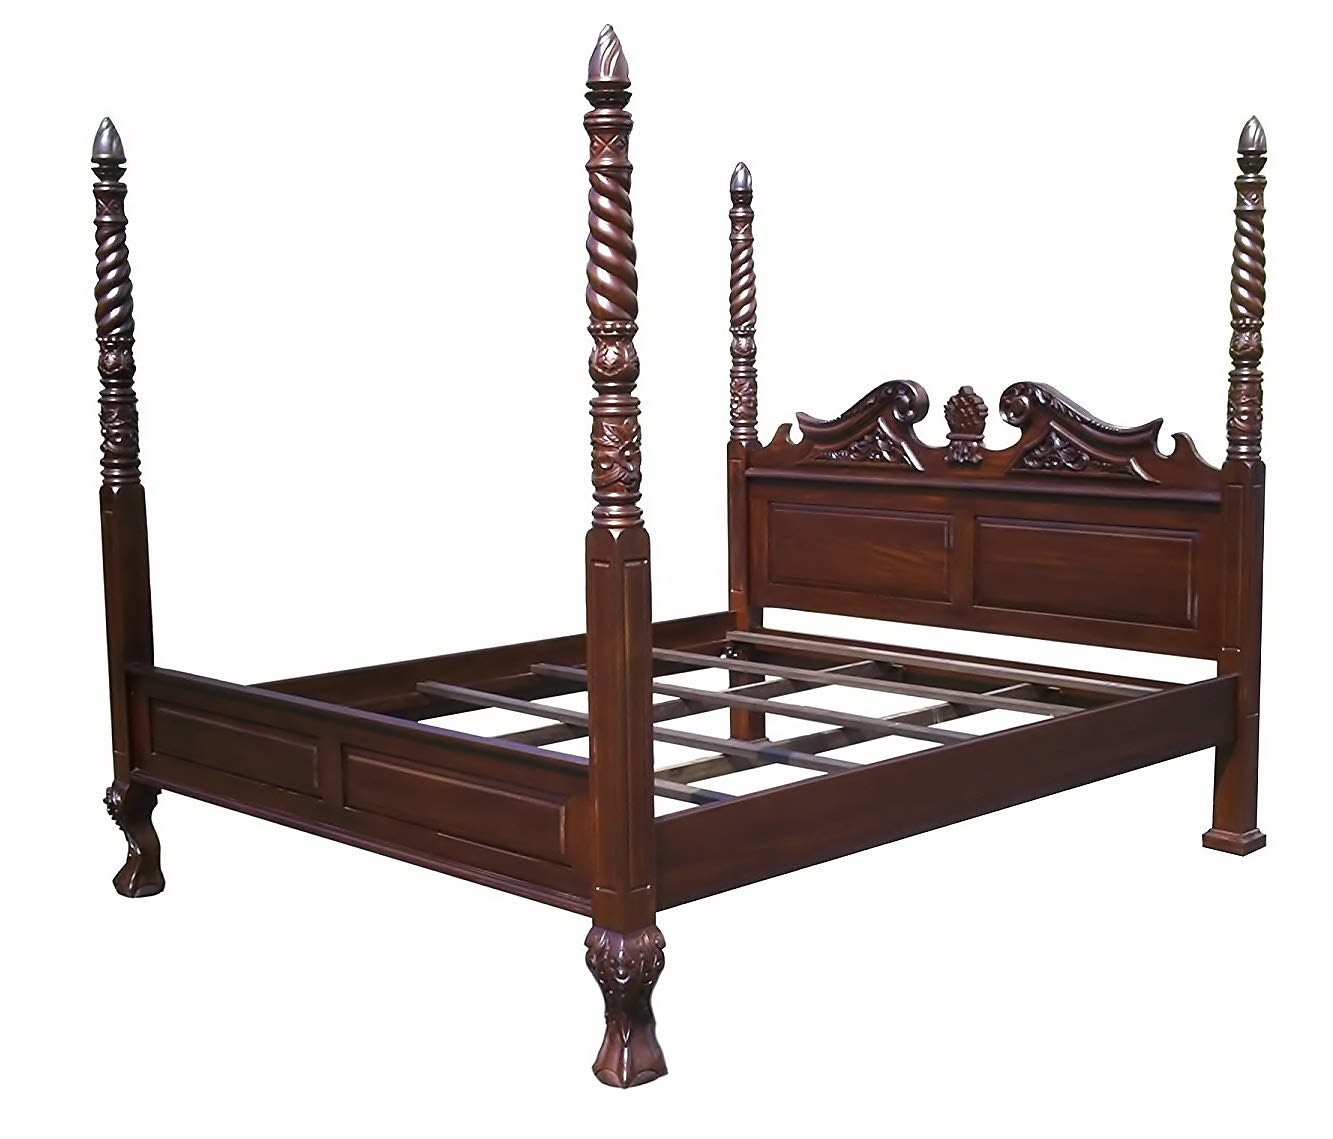 D ART COLLECTION England 4 Poster Bed in Real Mahogany Wood